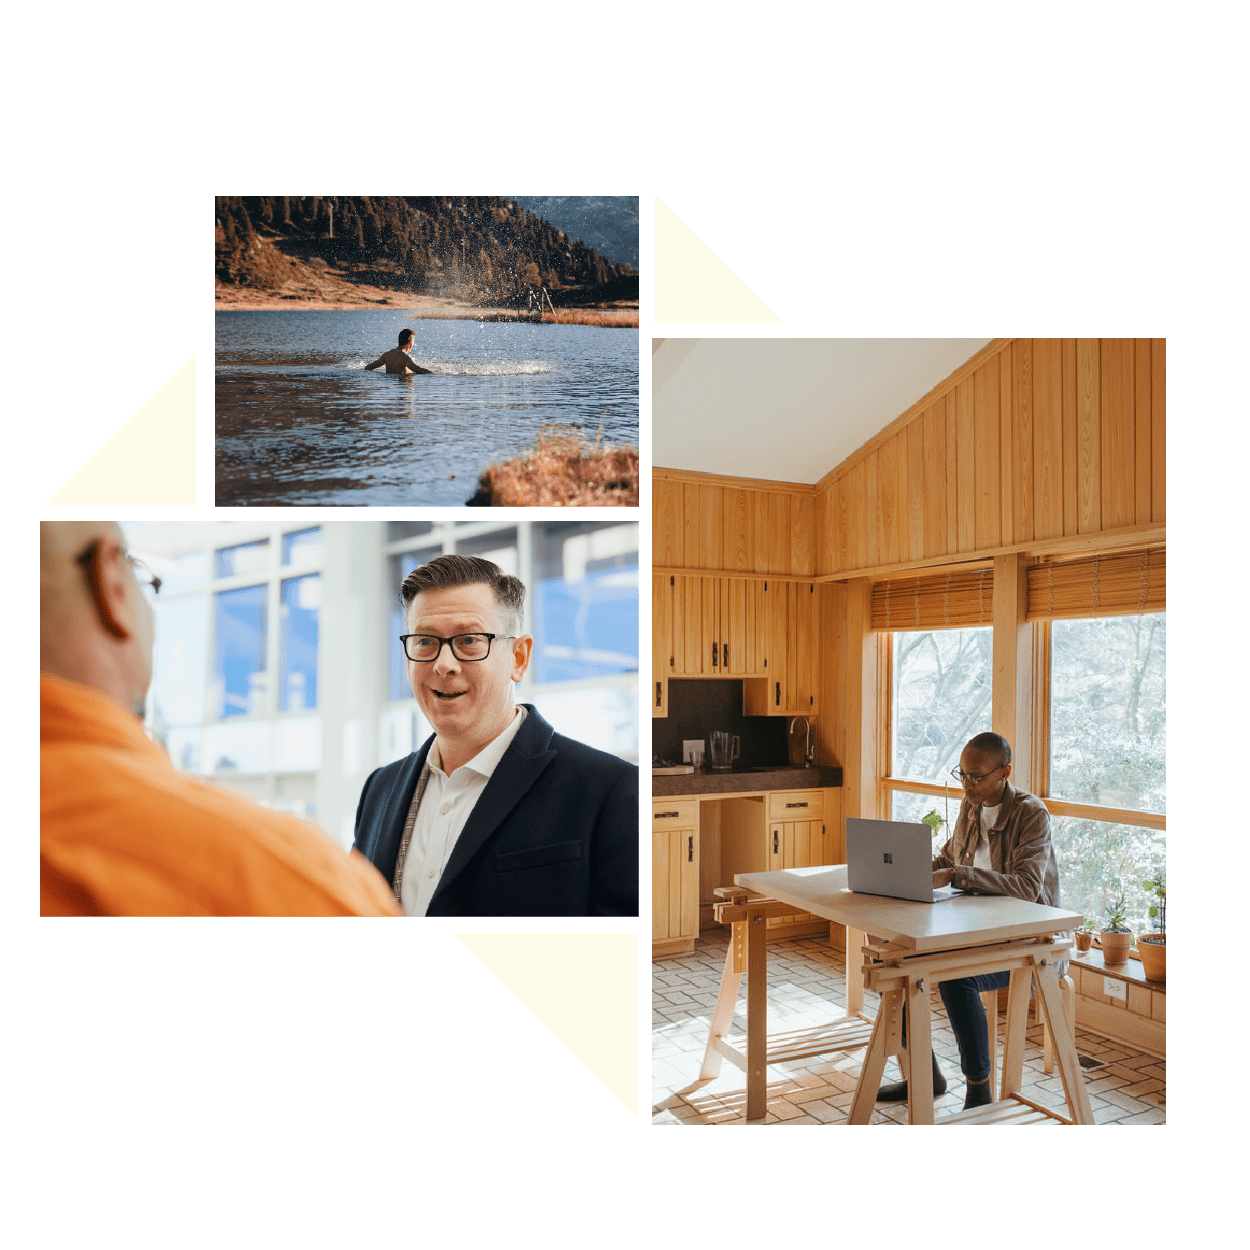 Images of an individual working on his laptop at home a man swimming in a lake and two business men speaking